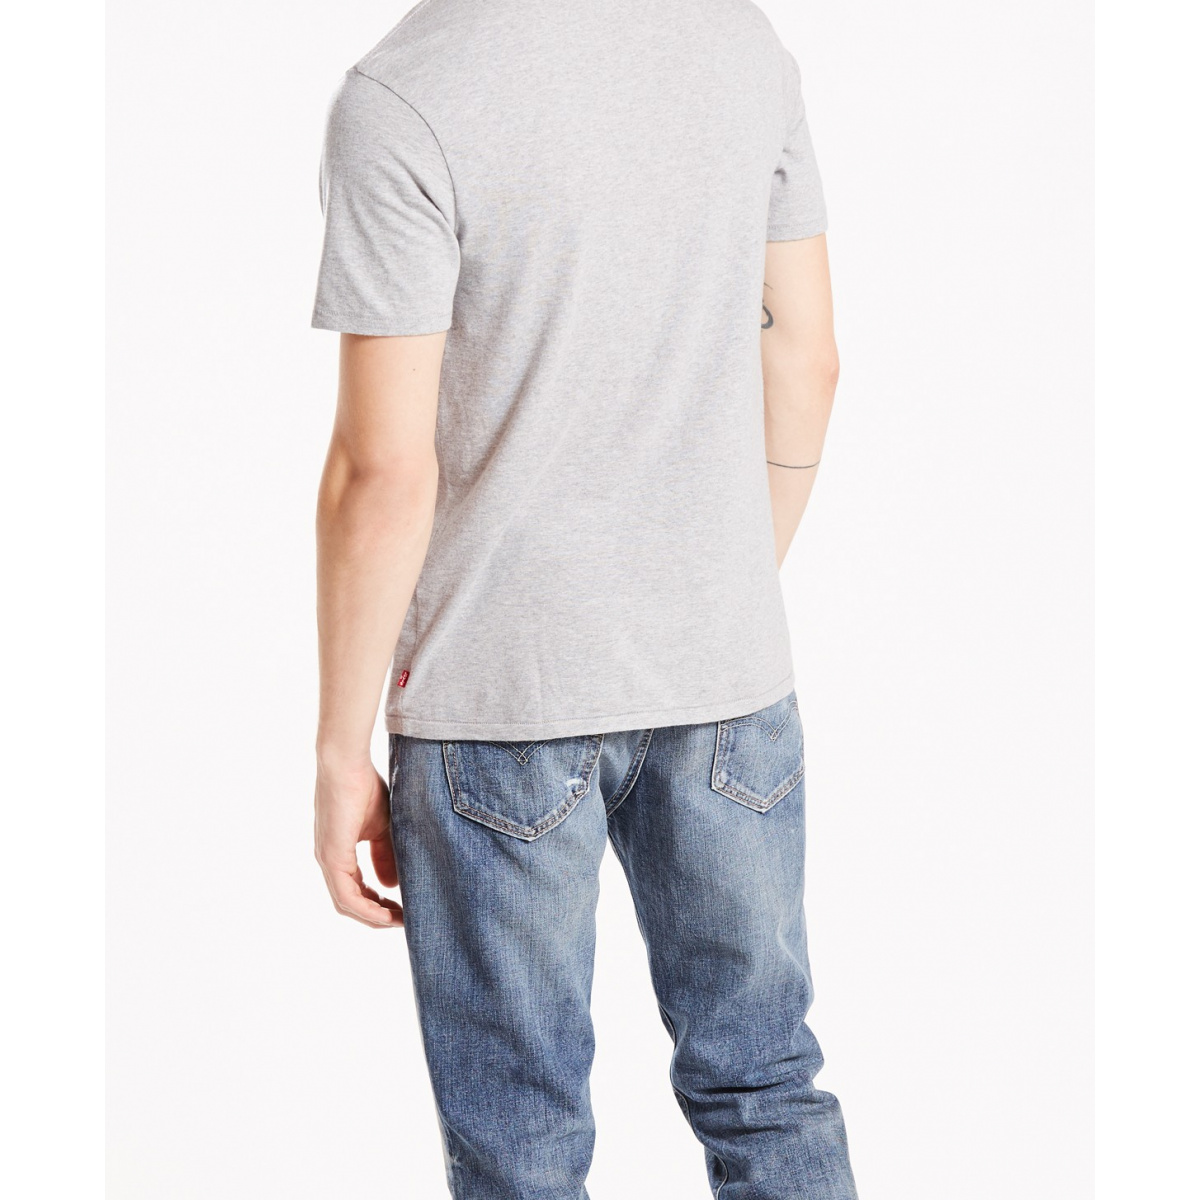 7yfybg6 Gris Levi's® Courtes T Manches Ccv Shirt Mode Homme HWE9DI2